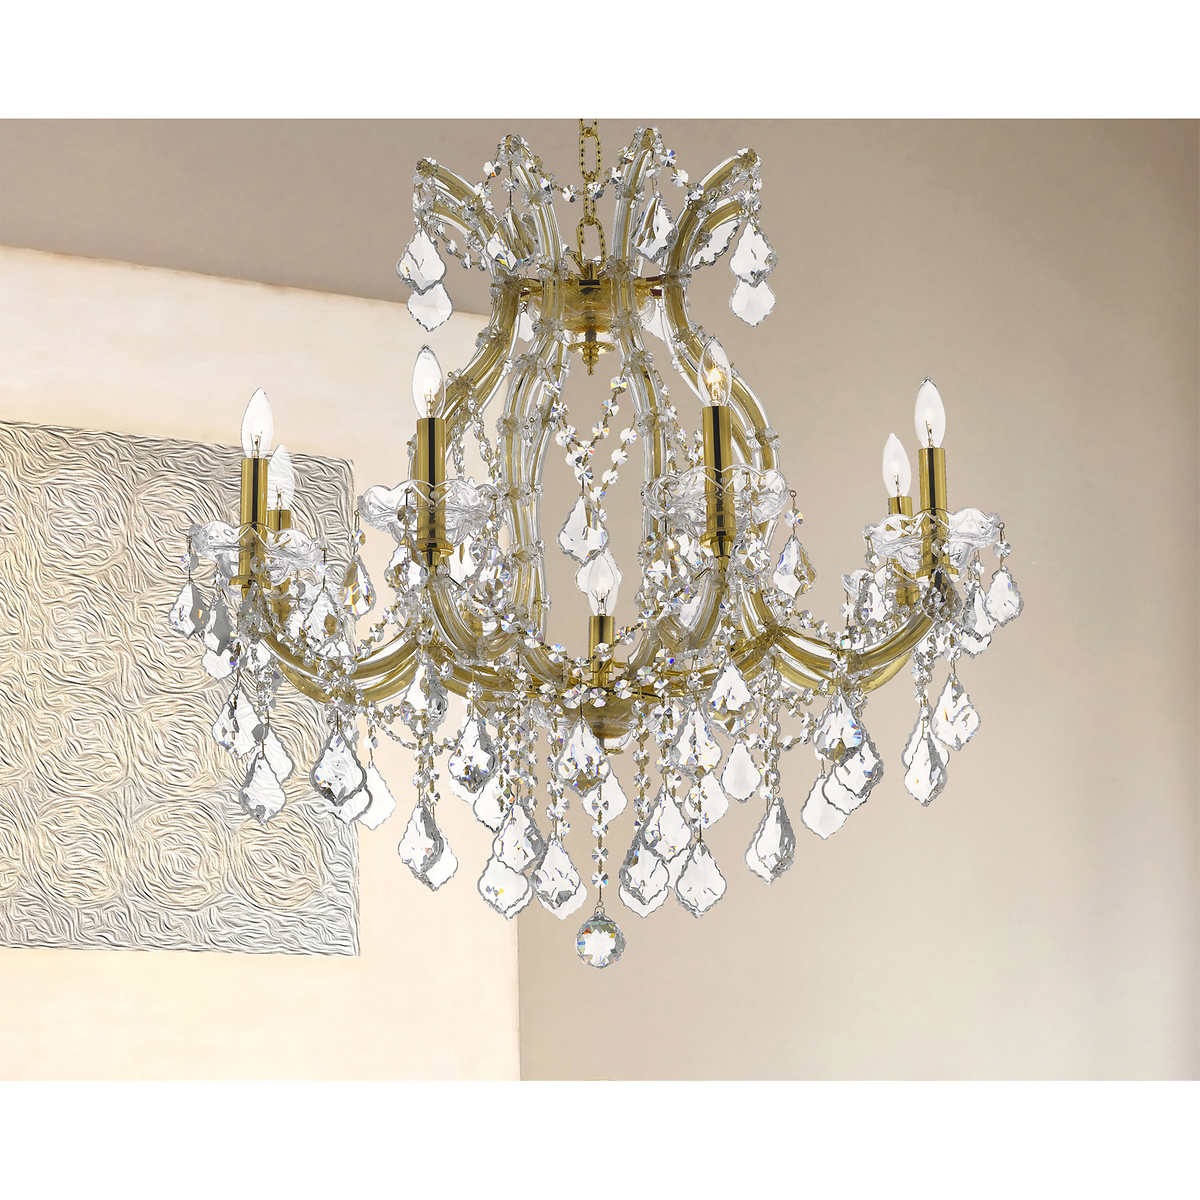 Lighting by pecaso maria theresa chandelier 26l x 26w 25 lbs lighting by pecaso maria theresa chandelier 26l x 26w 25 lbs number of lights 9 arubaitofo Choice Image